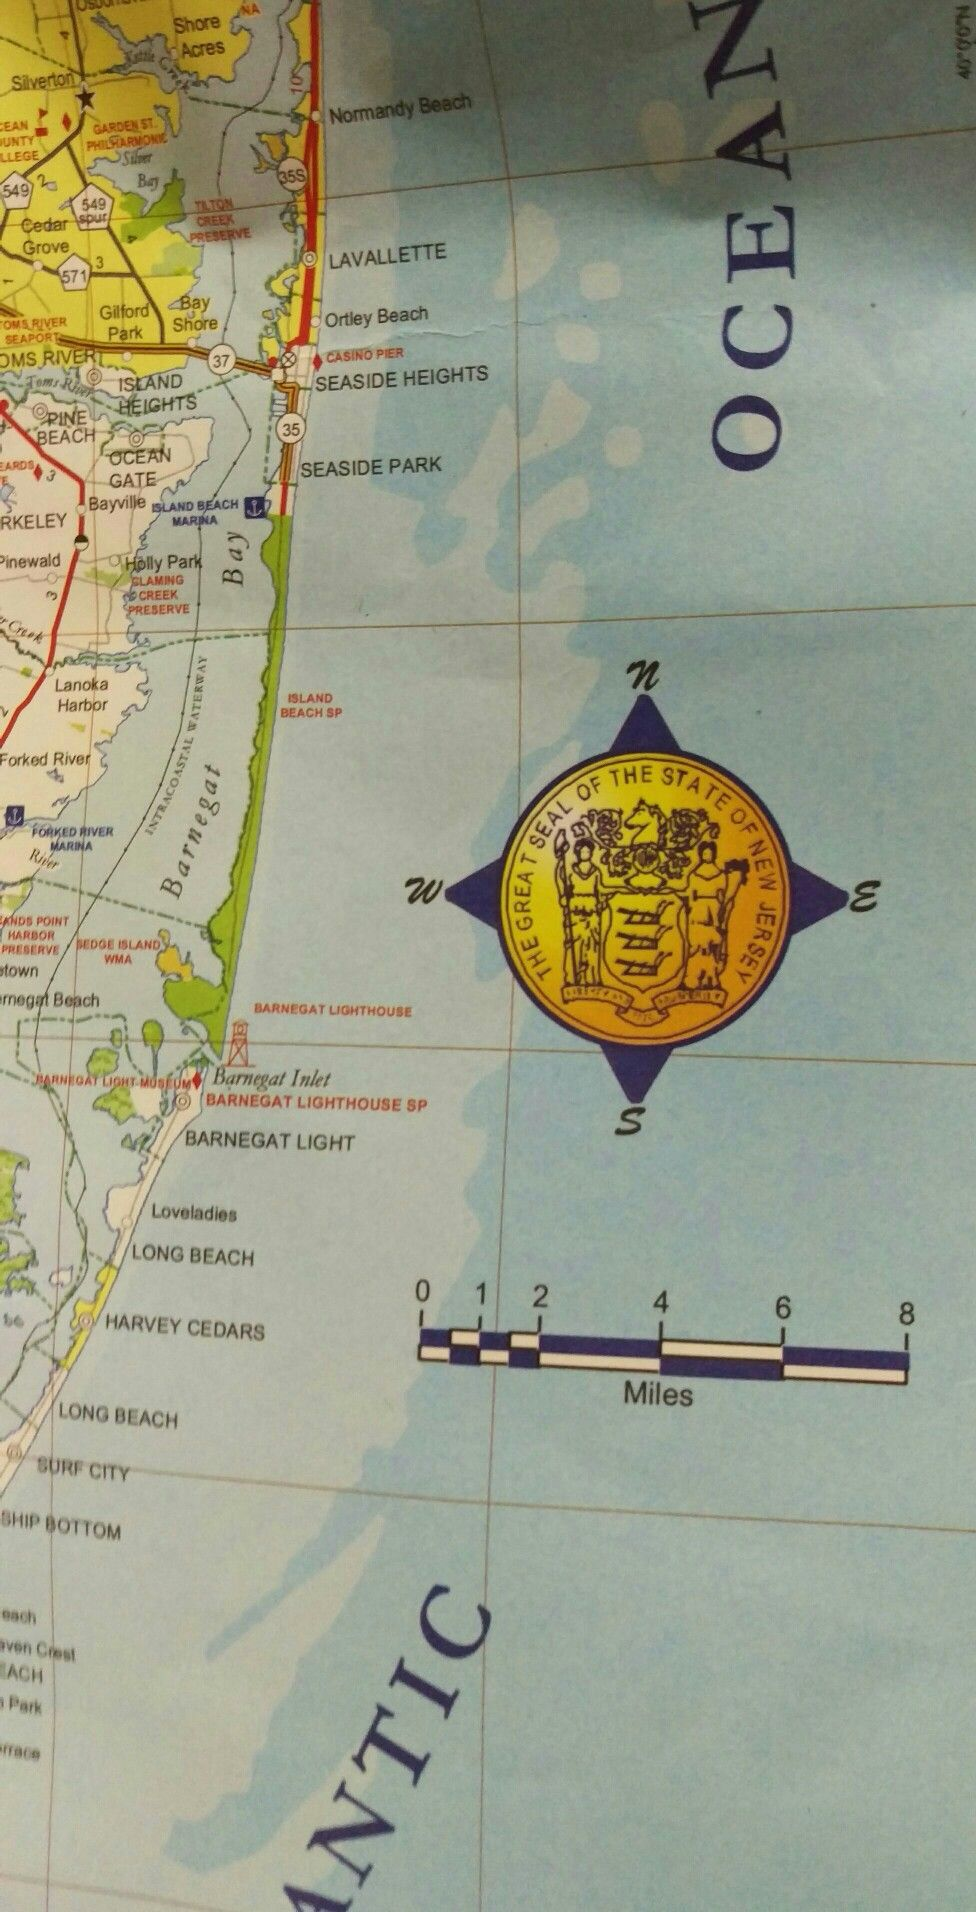 Compass Rose On The New Jersey 2017 State Transportation Map Printed At Williams Heintz Map Compass Rose Island Heights Bay Park